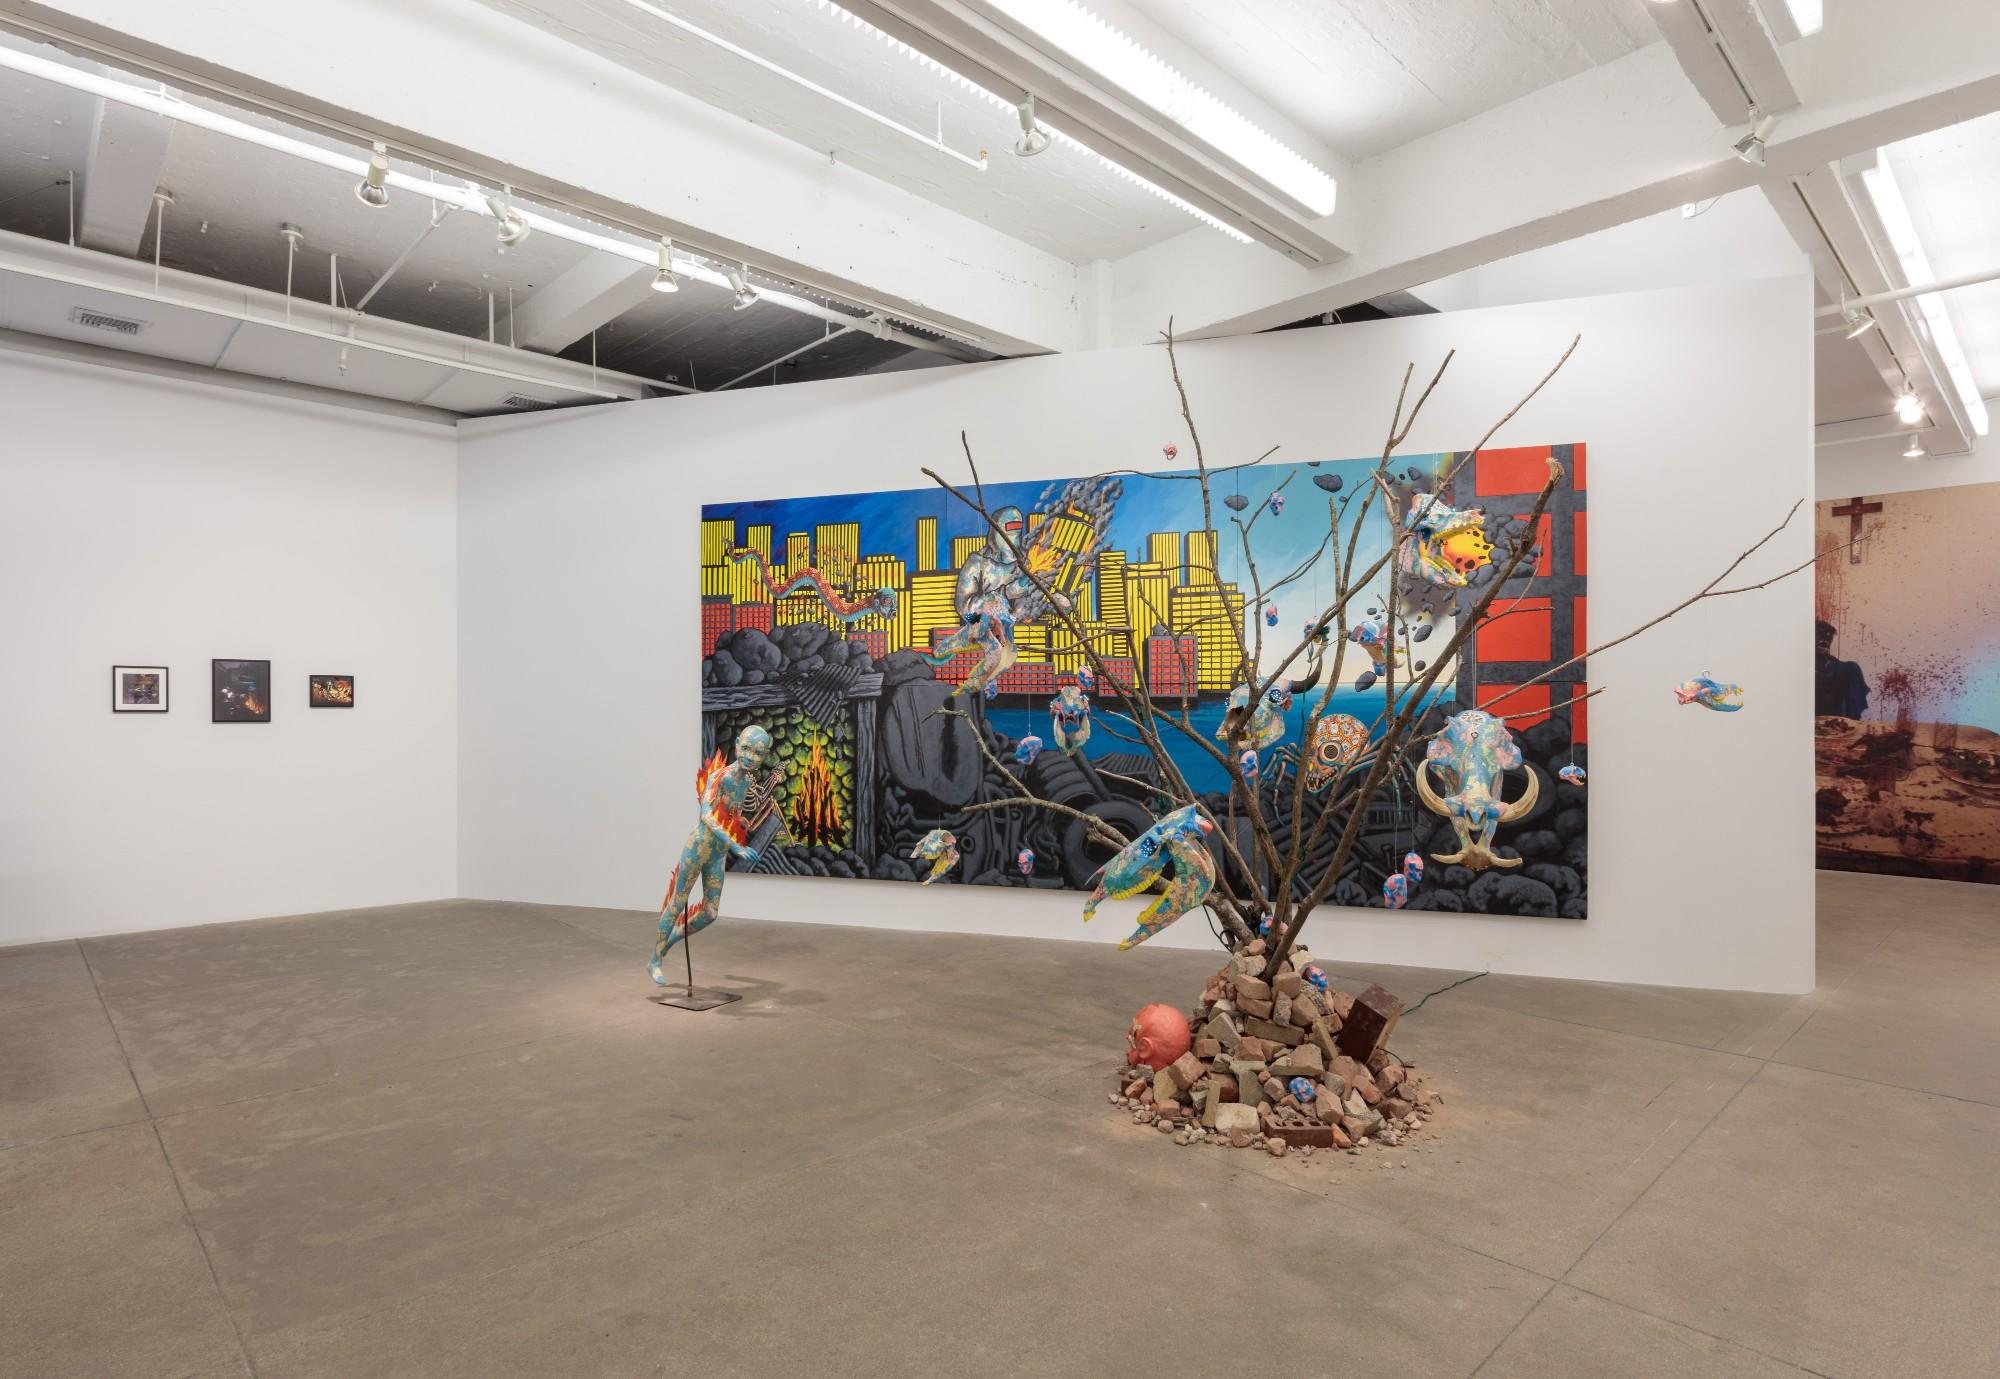 Installation view, Soon All This Will Be Picturesque Ruins: The Installations of David Wojnarowicz at P·P·O·W, New York, now available to view online.